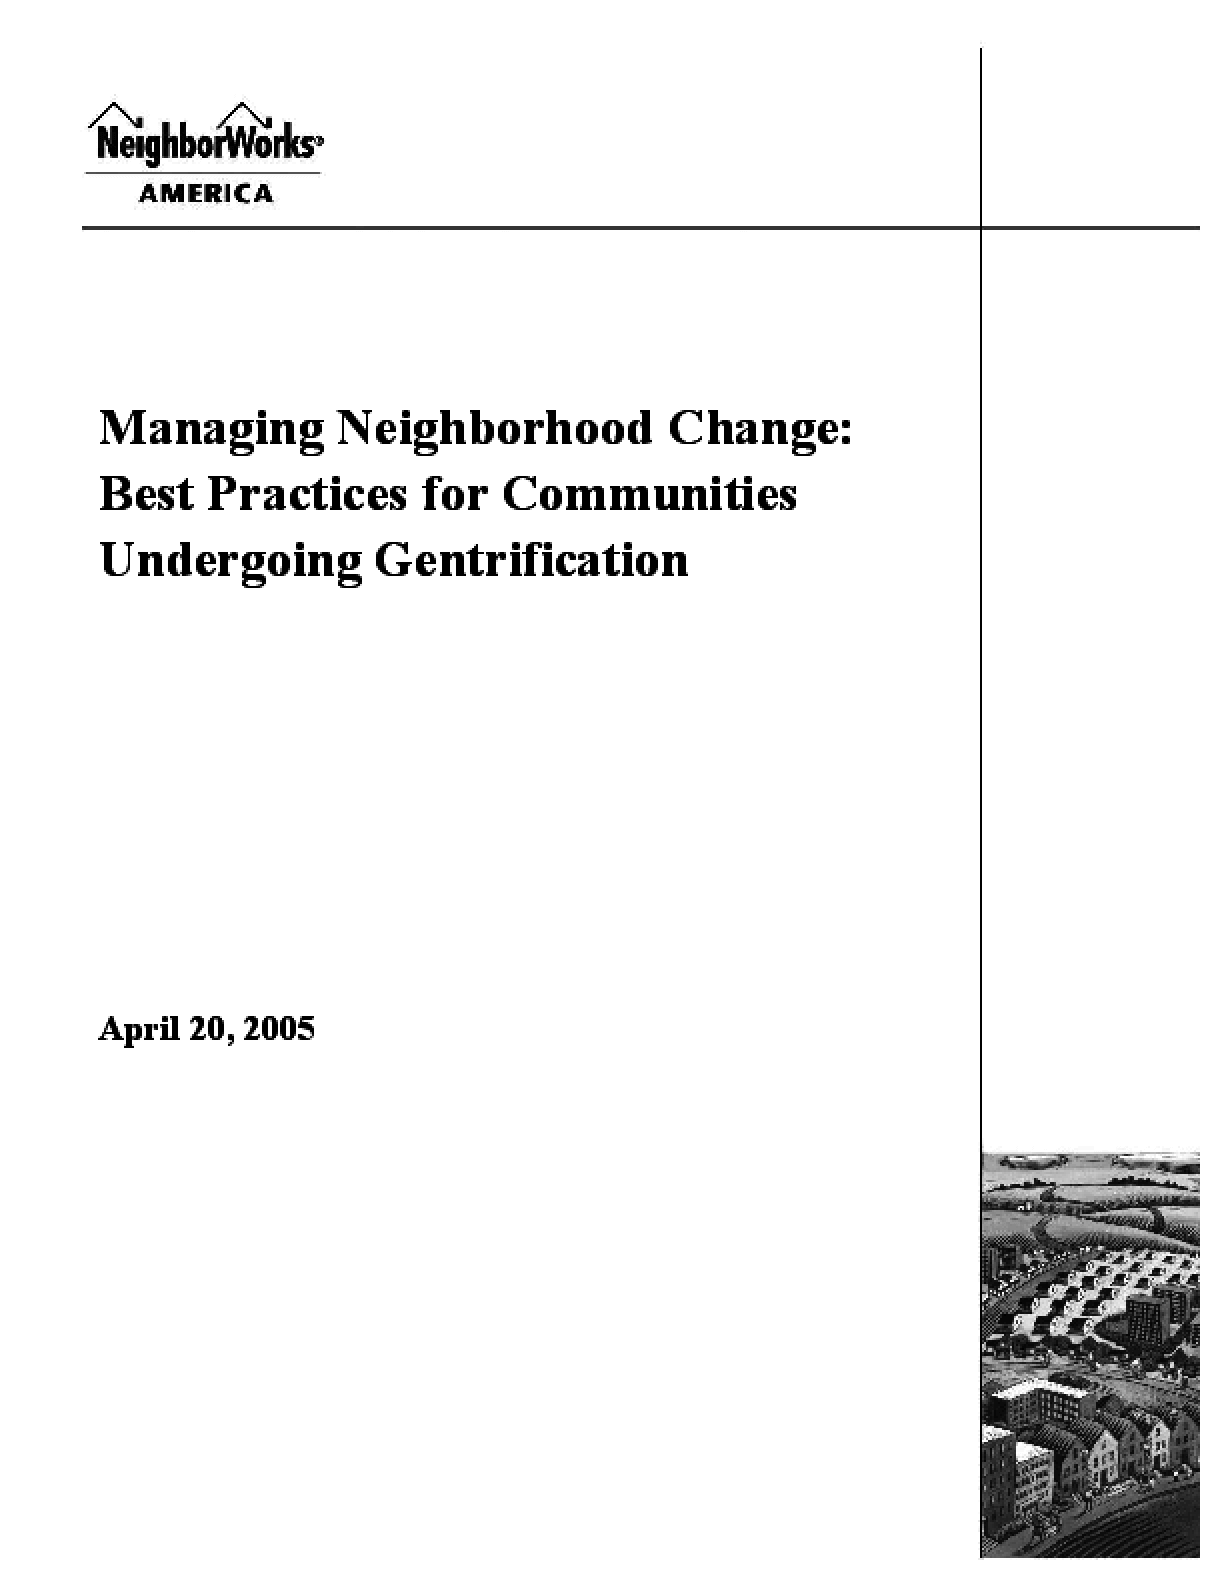 Managing Neighborhood Change: Best Practices for Communities Undergoing Gentrification